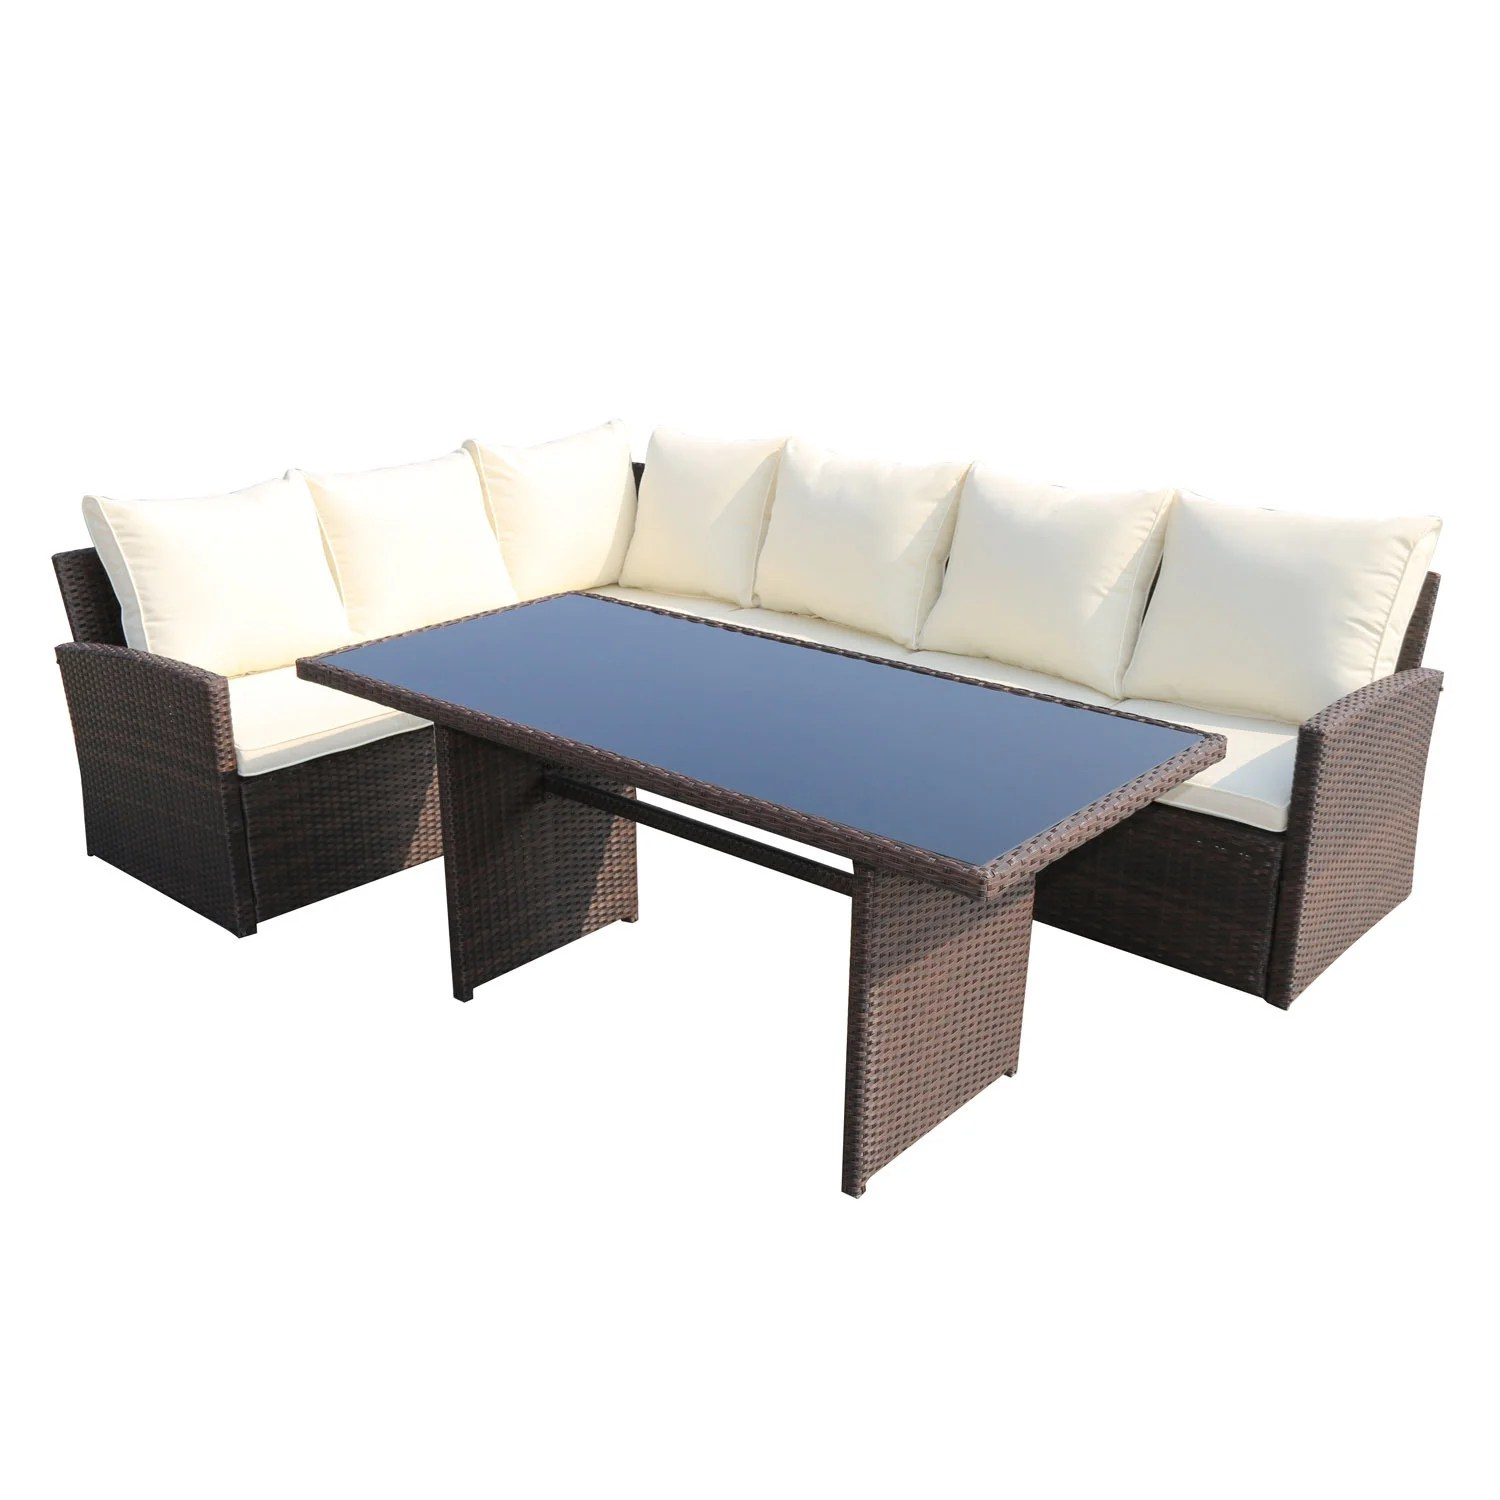 Rattan Sofa Barcelona Rattan Sofa Patio Dining Set